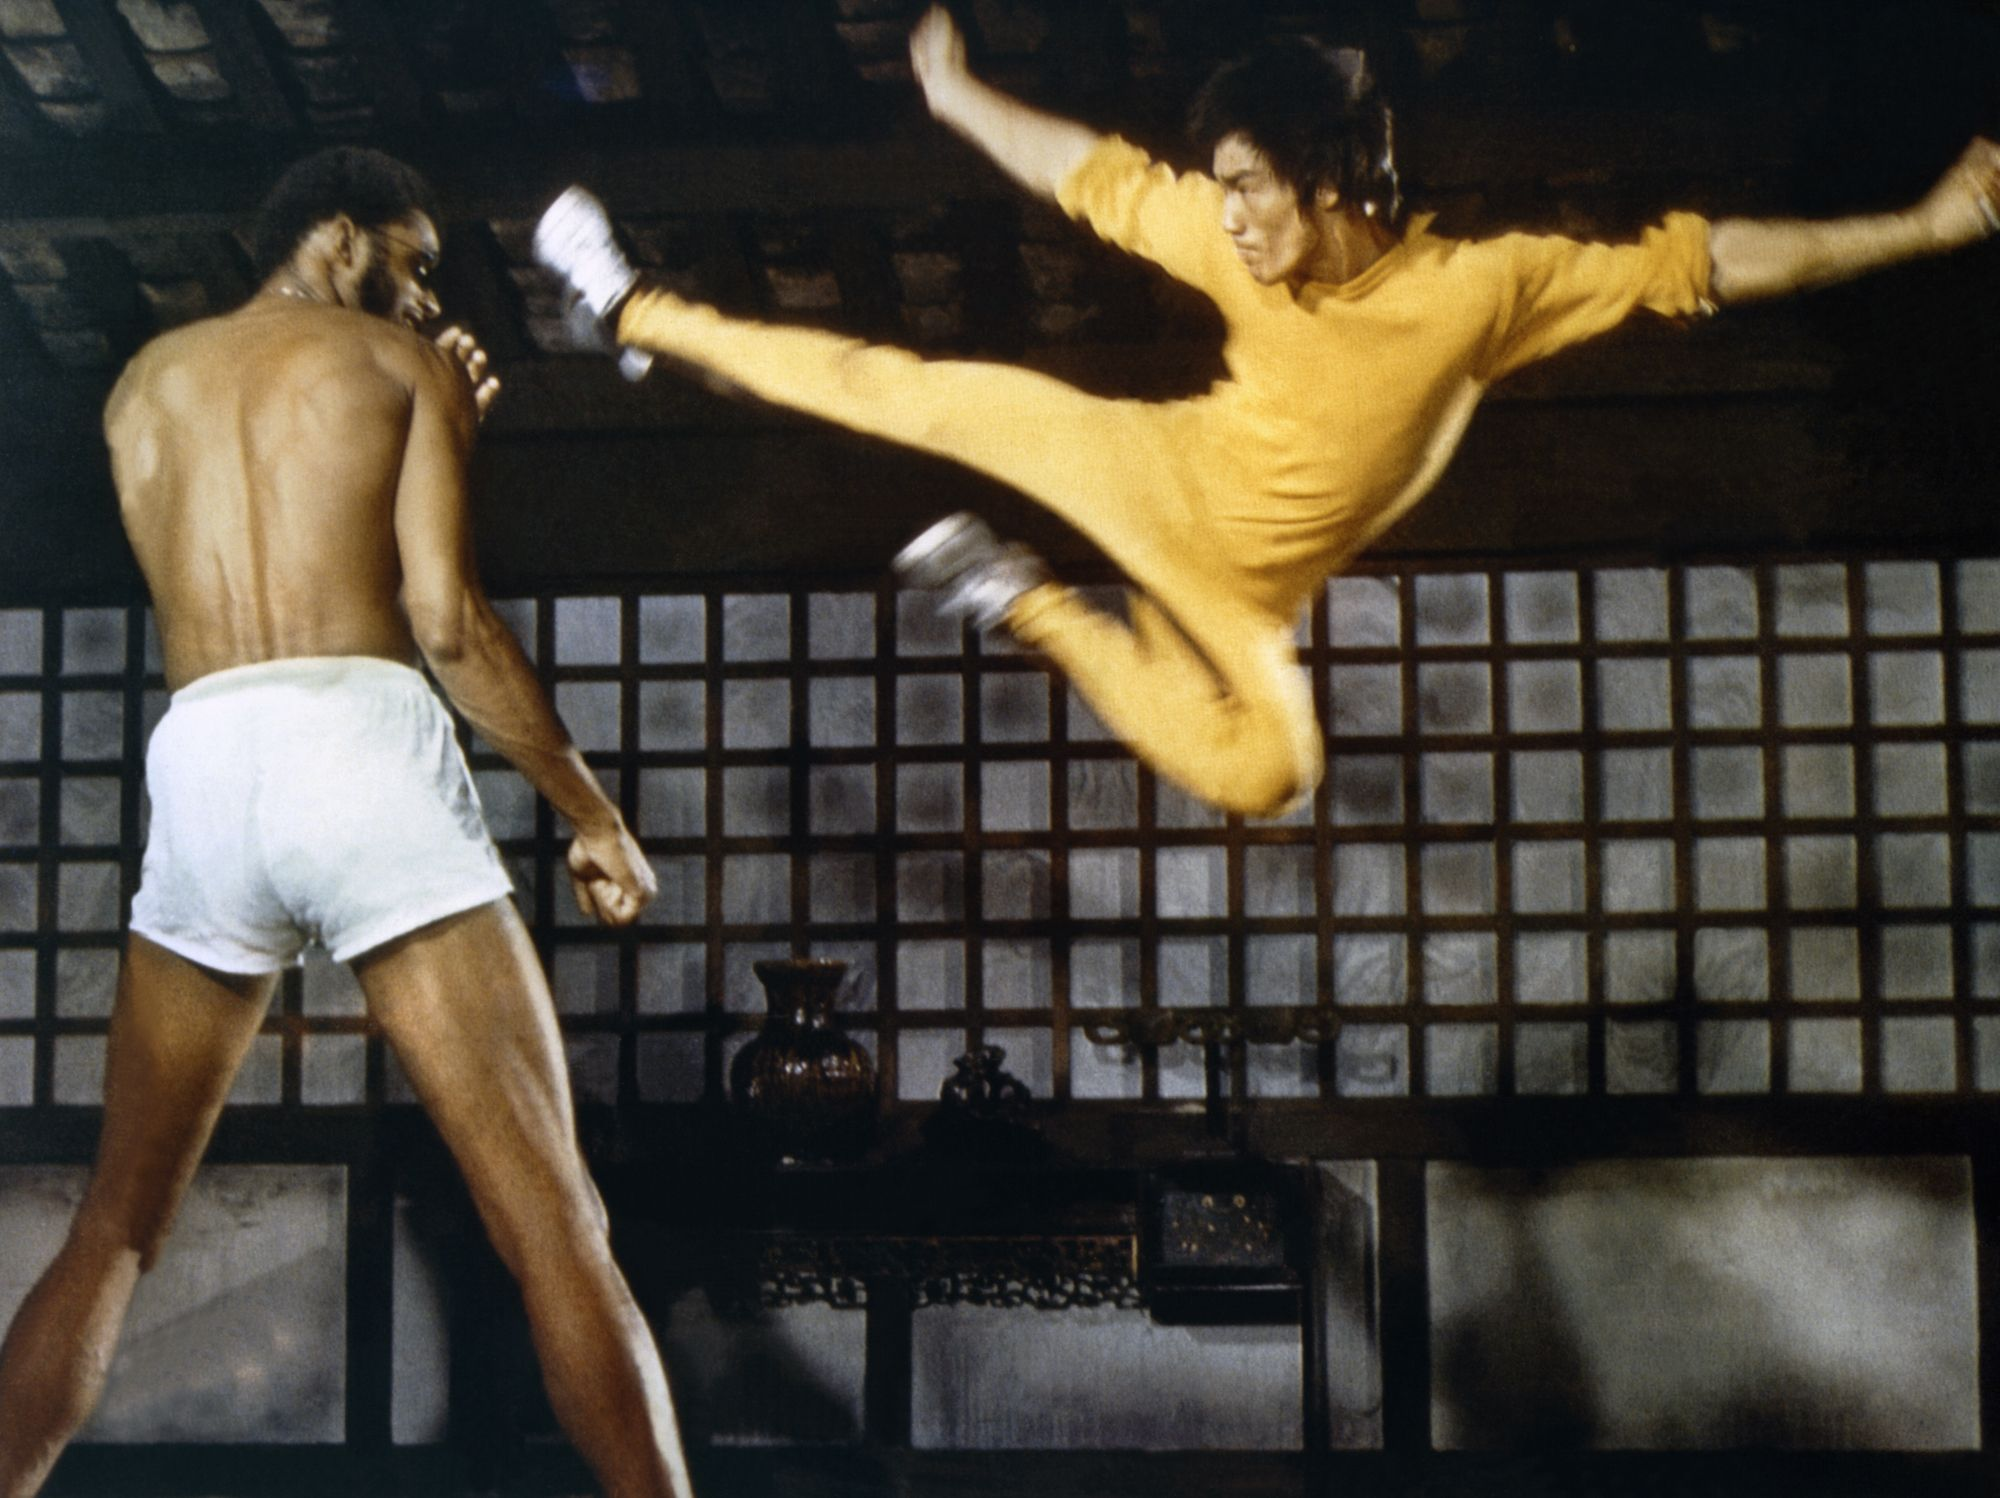 Bruce Lee's Friend Kareem Abdul-Jabbar Calls Quentin Tarantino's Depiction a 'Failure'